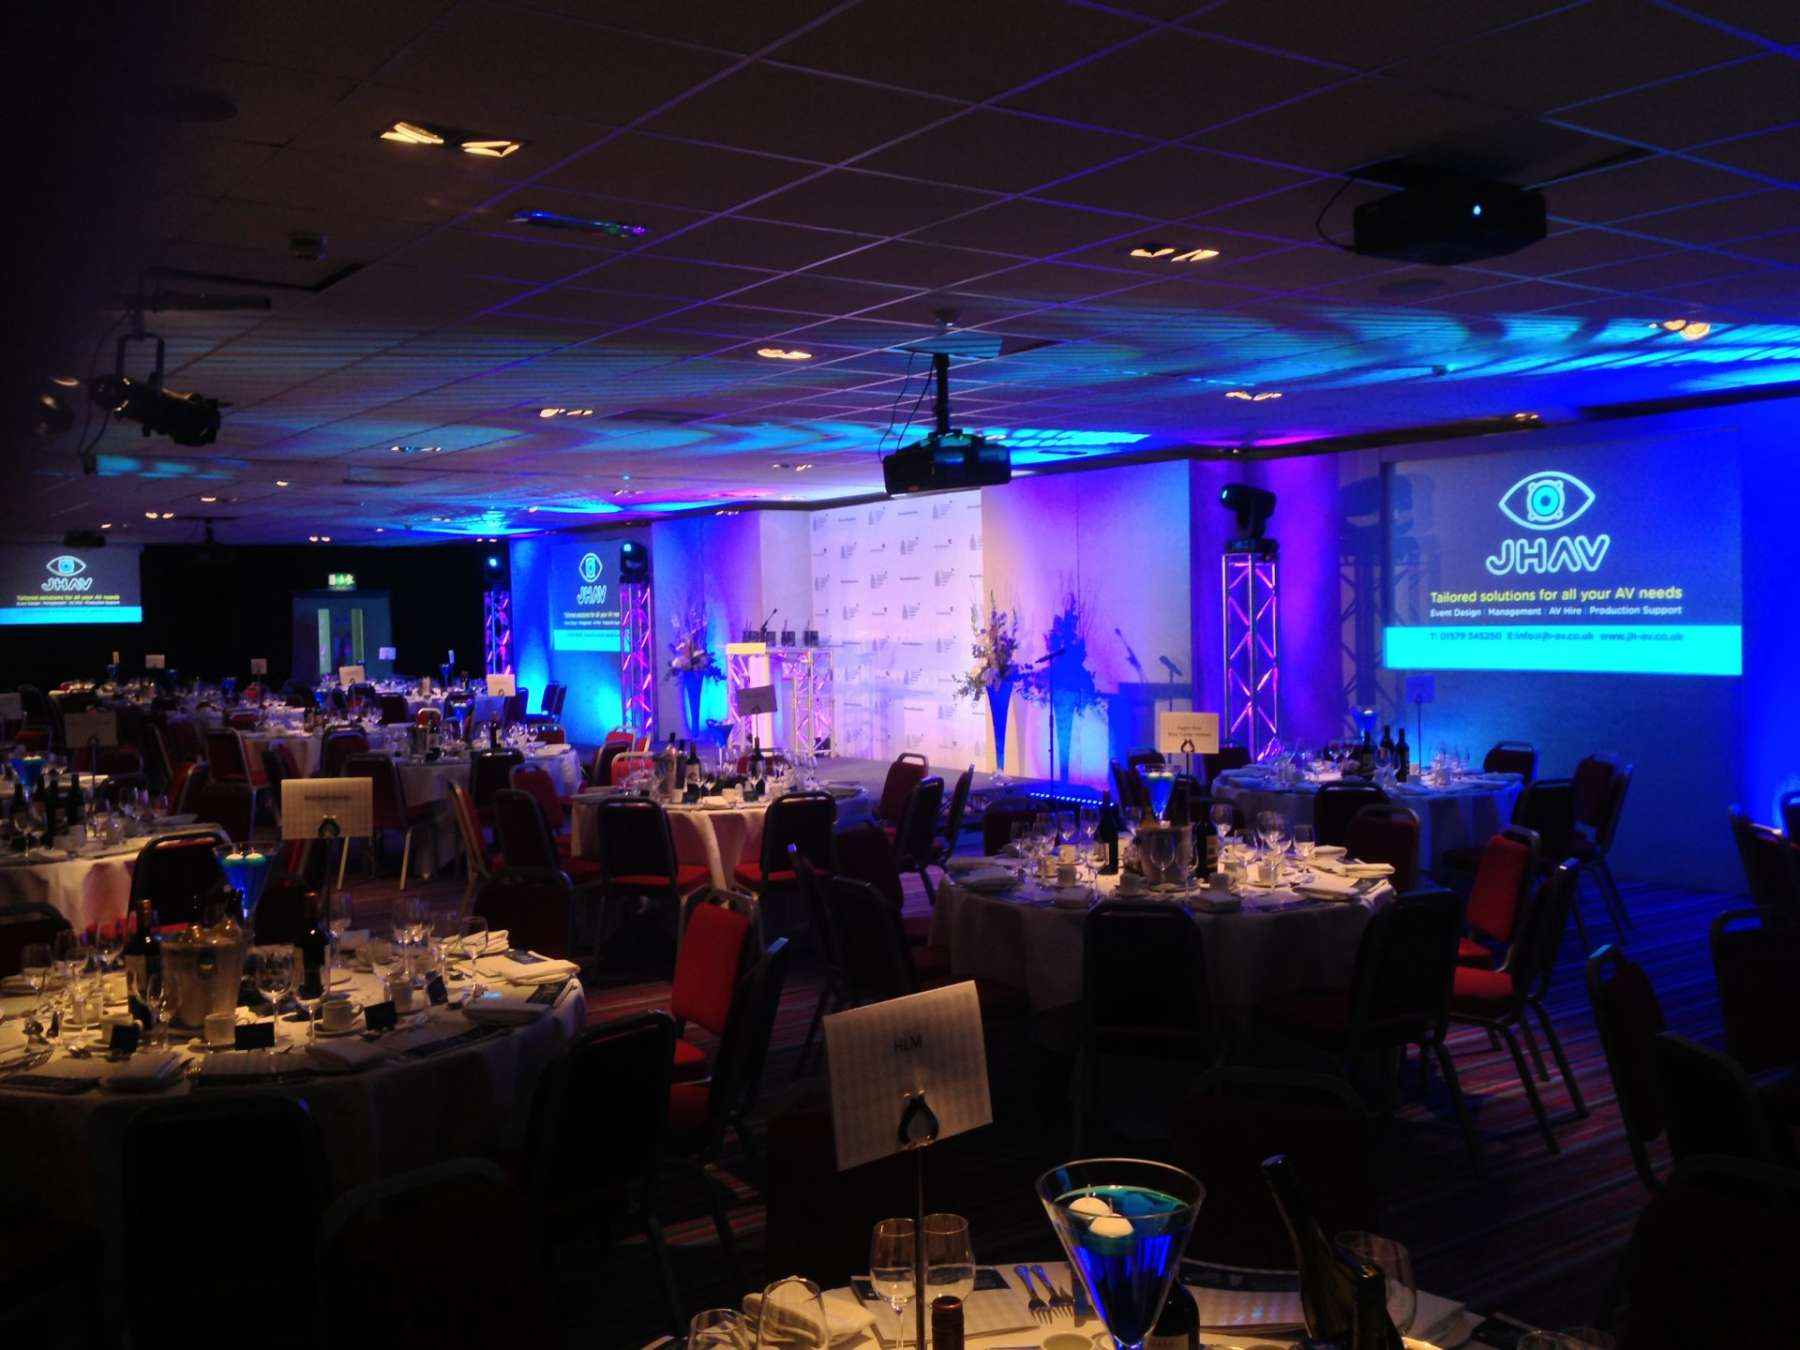 corporate event setup with blue uplighting